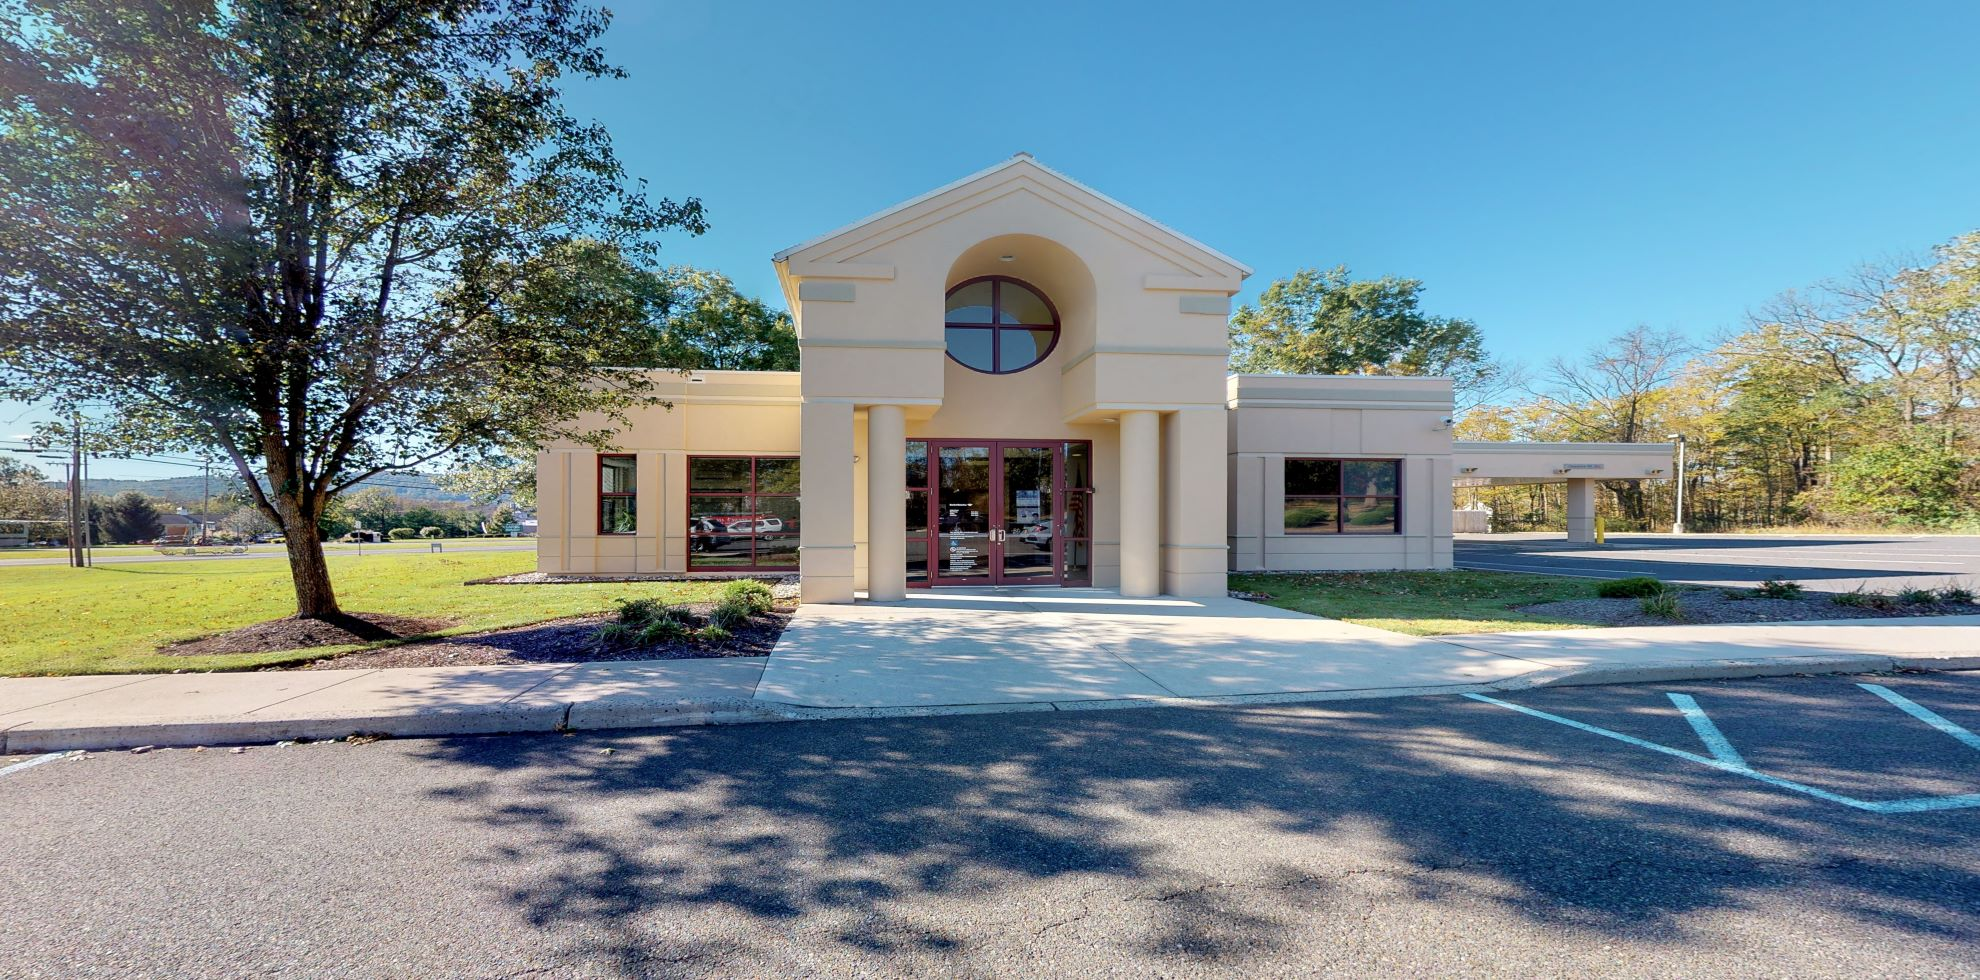 Bank of America financial center with drive-thru ATM | 396 US Highway 22 W, Whitehouse Station, NJ 08889